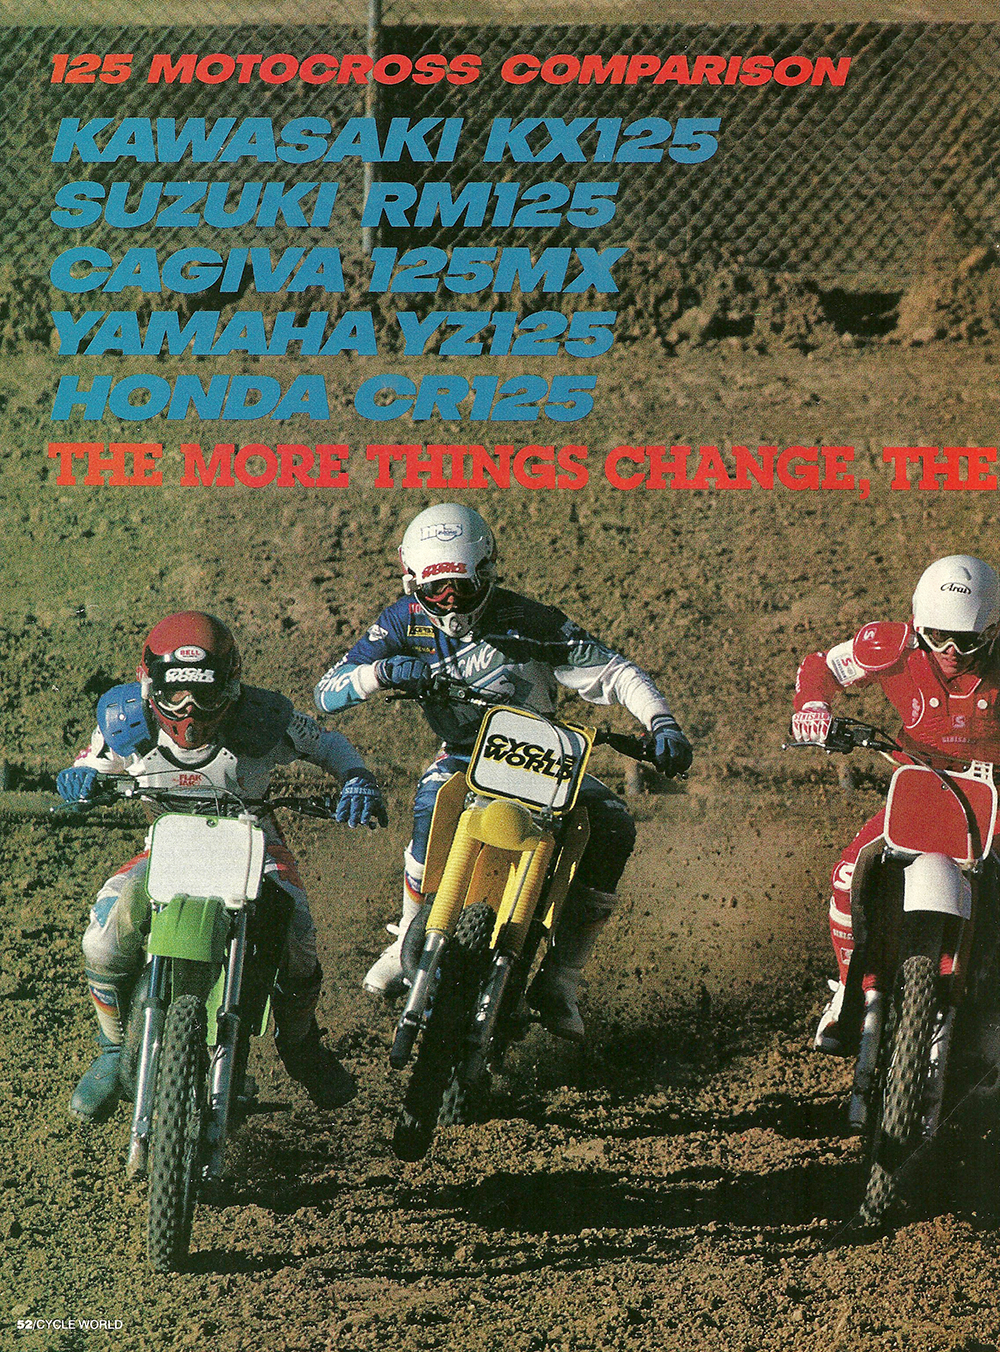 1987 Comparison KX125 vs RM125 vs Cagiva 125MX vs YZ125 vs CR125 road test 01.jpg